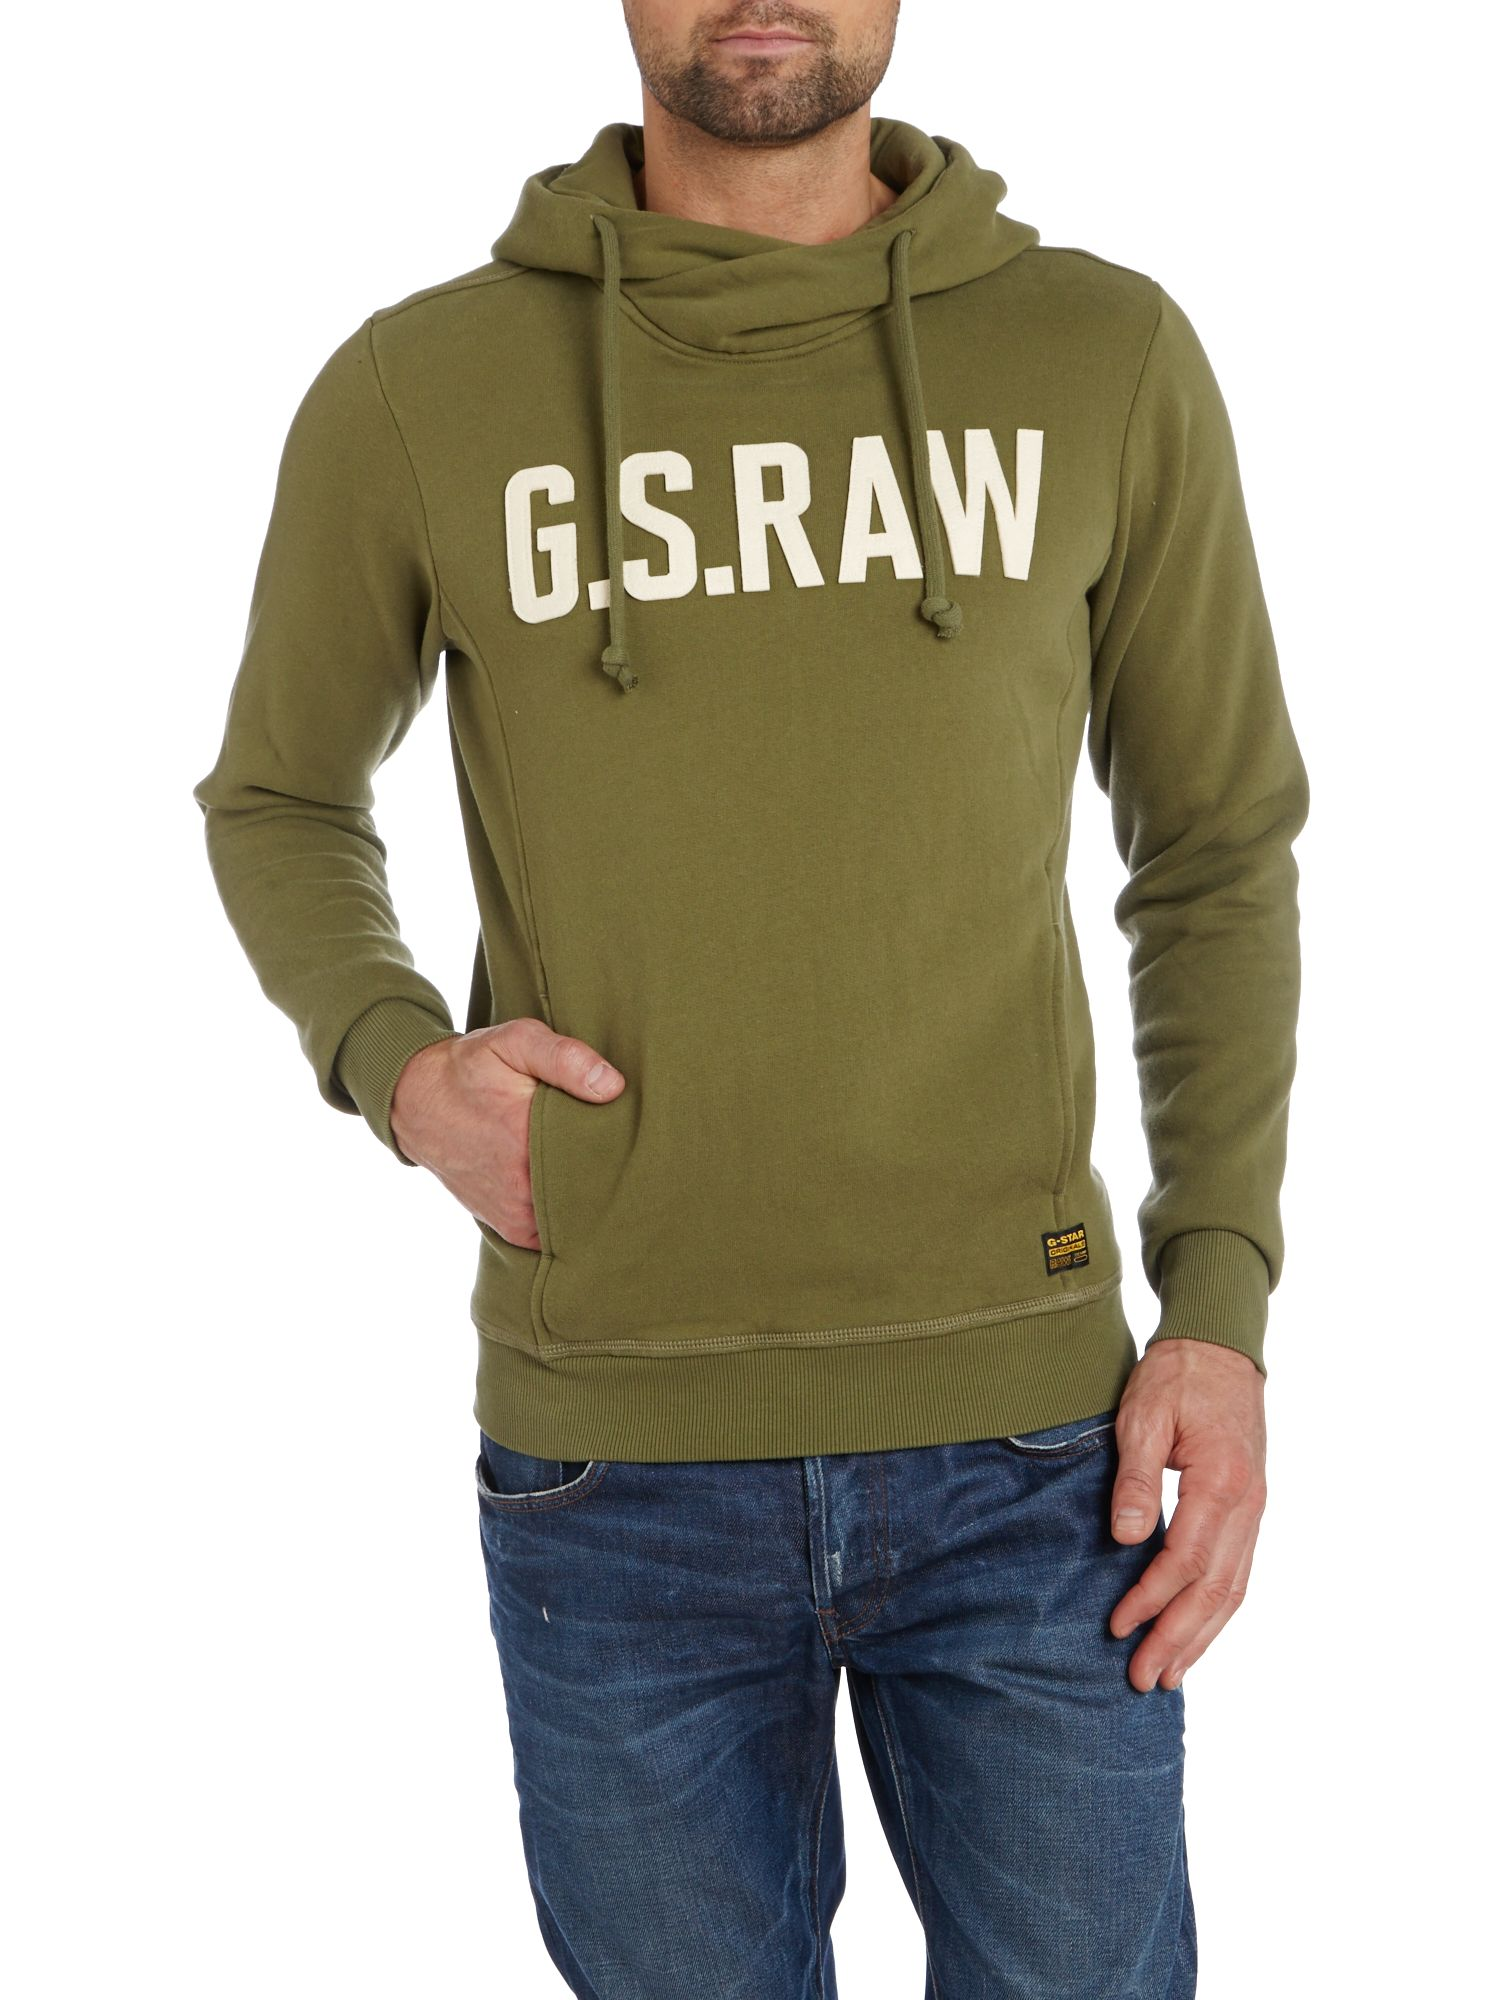 2009 g-star hooded sweatshirt